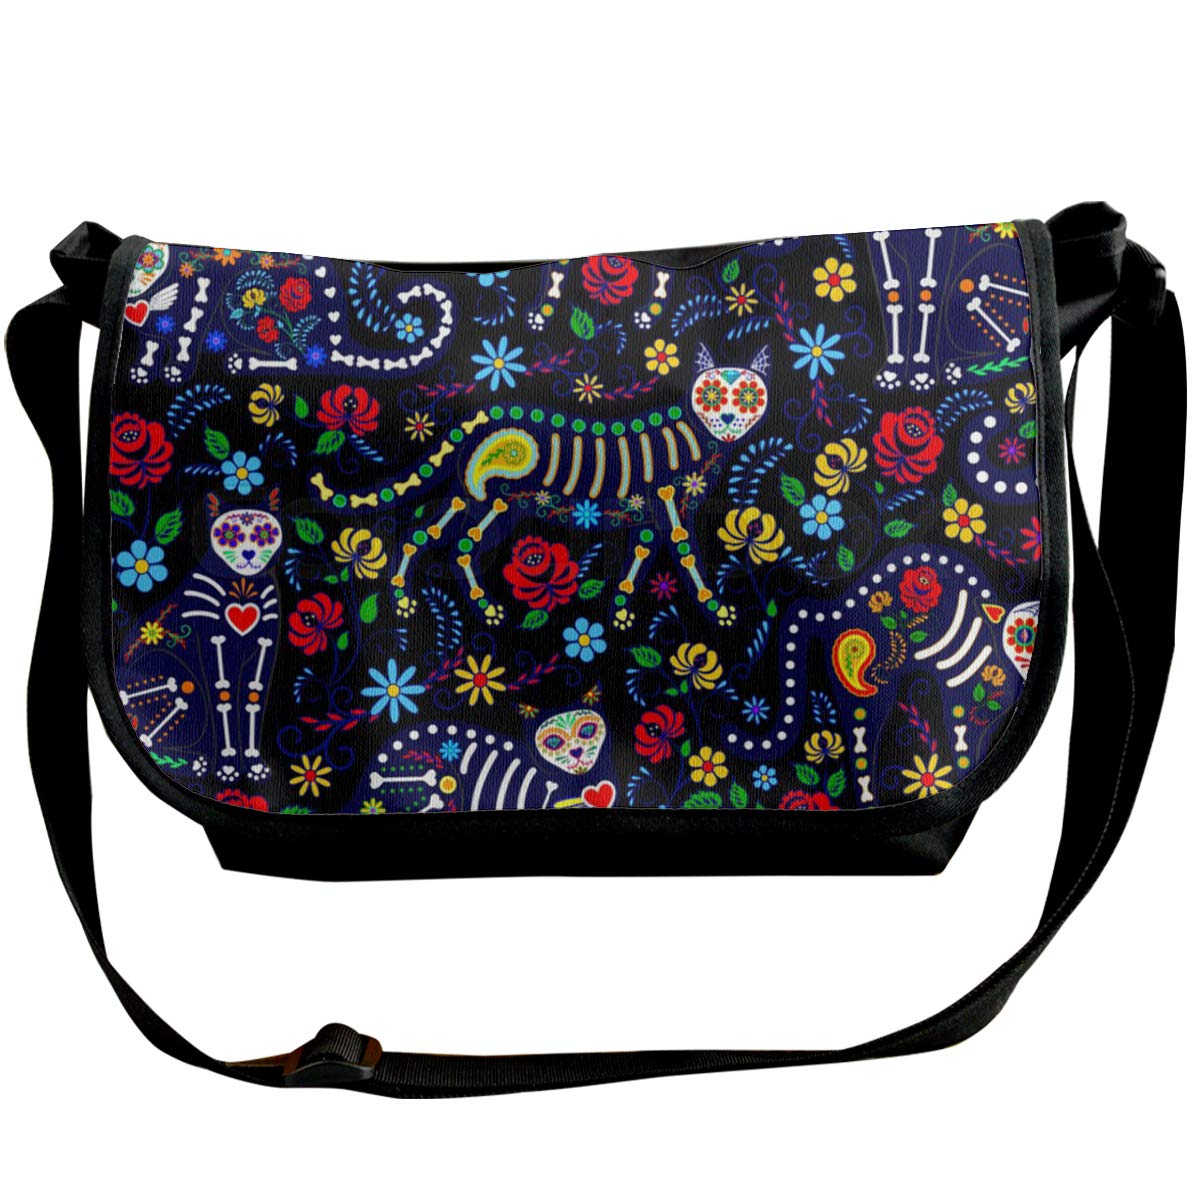 Futong Huaxia Cat Skull Travel Messenger Bags Handbag Shoulder Bag Crossbody Bag Unisex